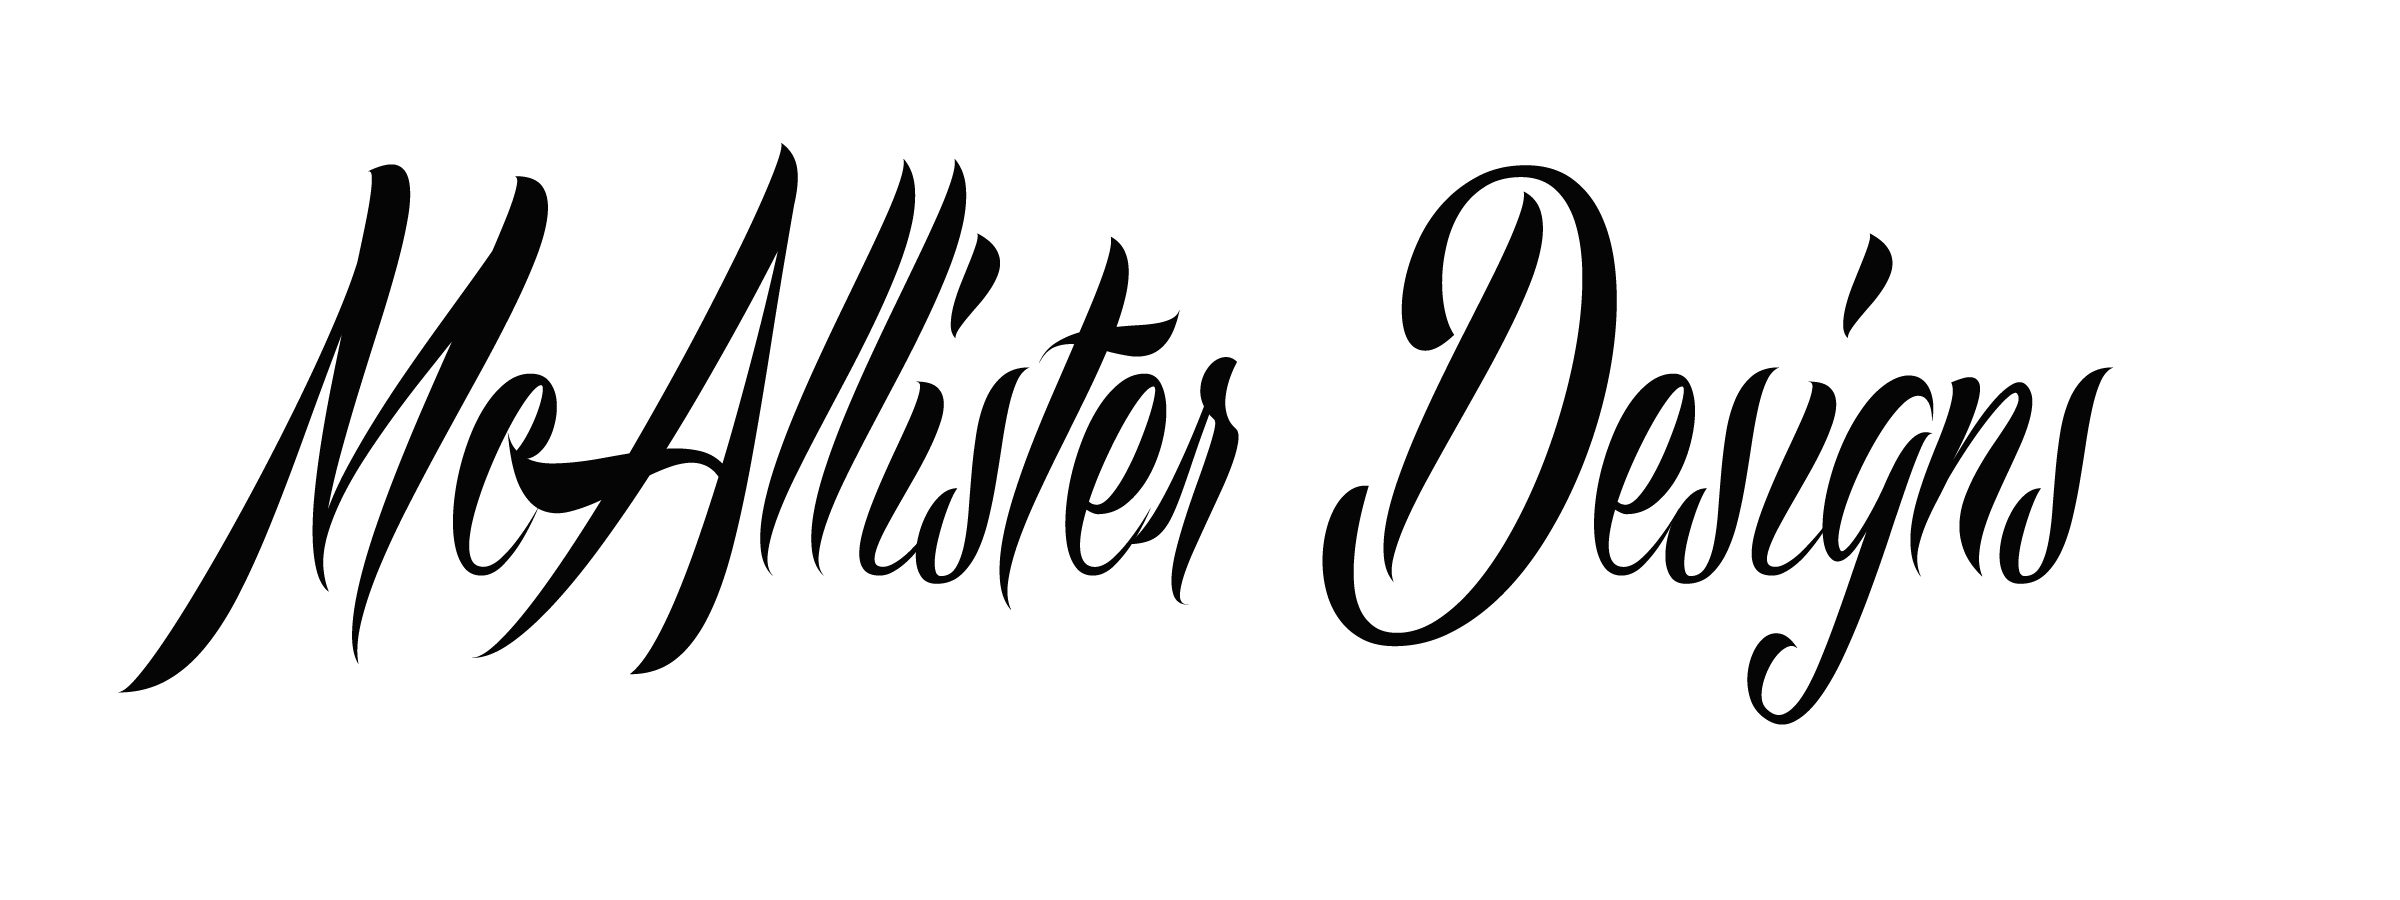 mcallister designs Signature